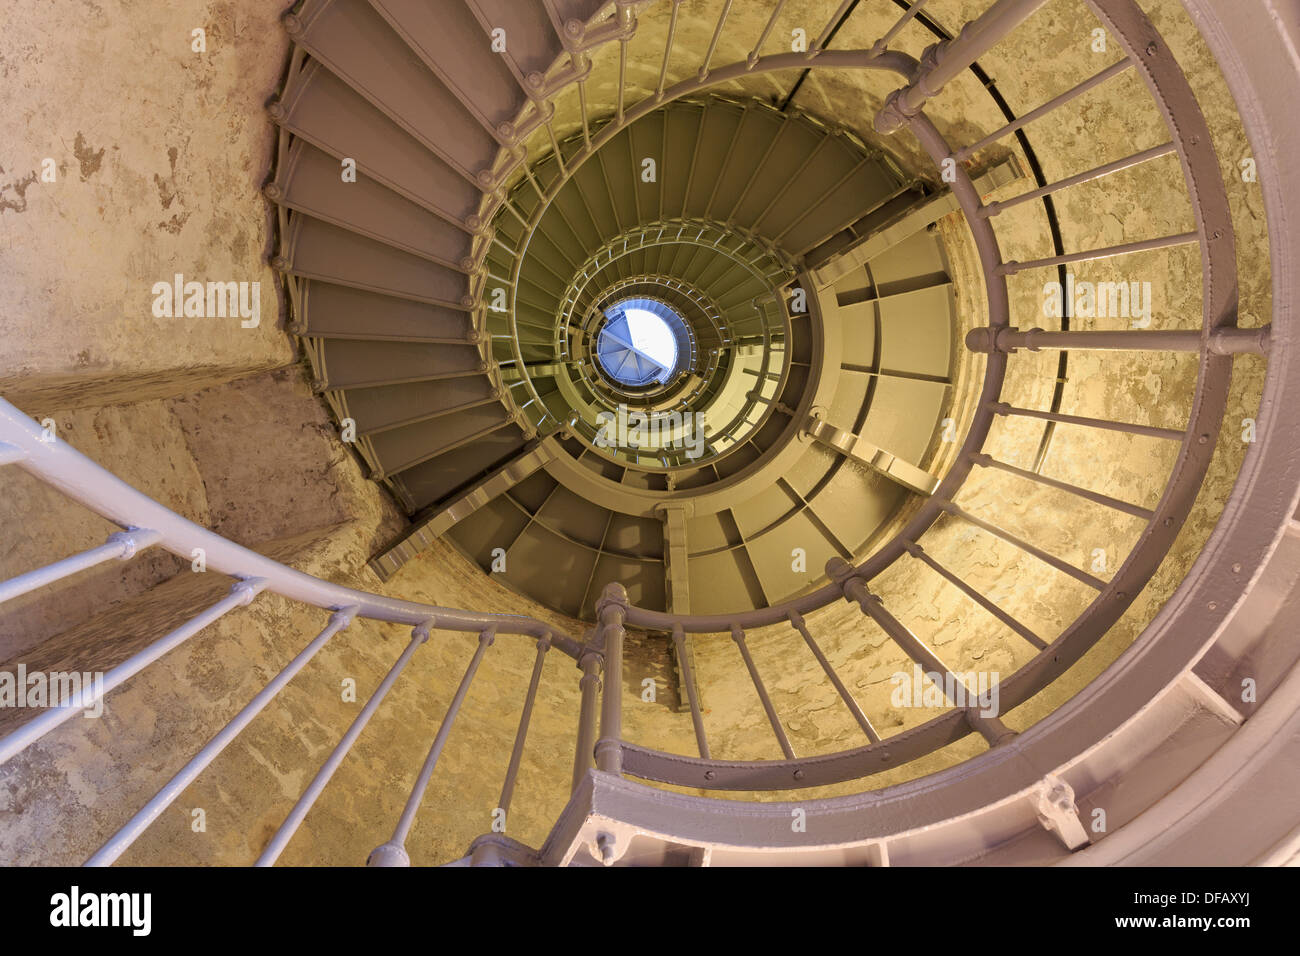 Spiral stairs in Grays Harbor Lighthouse,Westport,Washington State,USA,North America - Stock Image